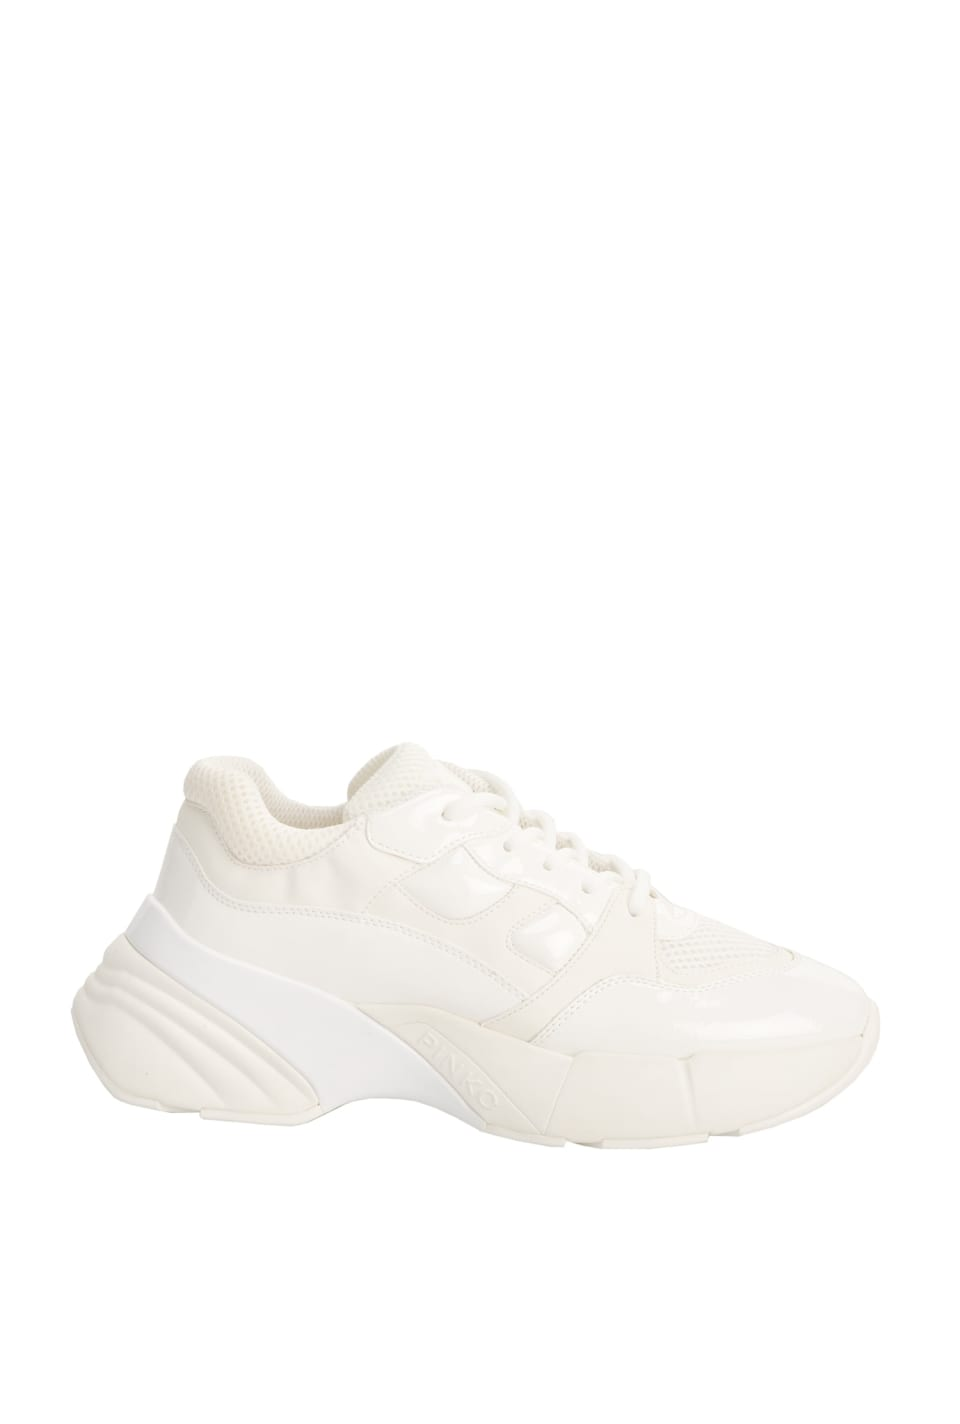 Oversized Monochrome Sneakers - Pinko